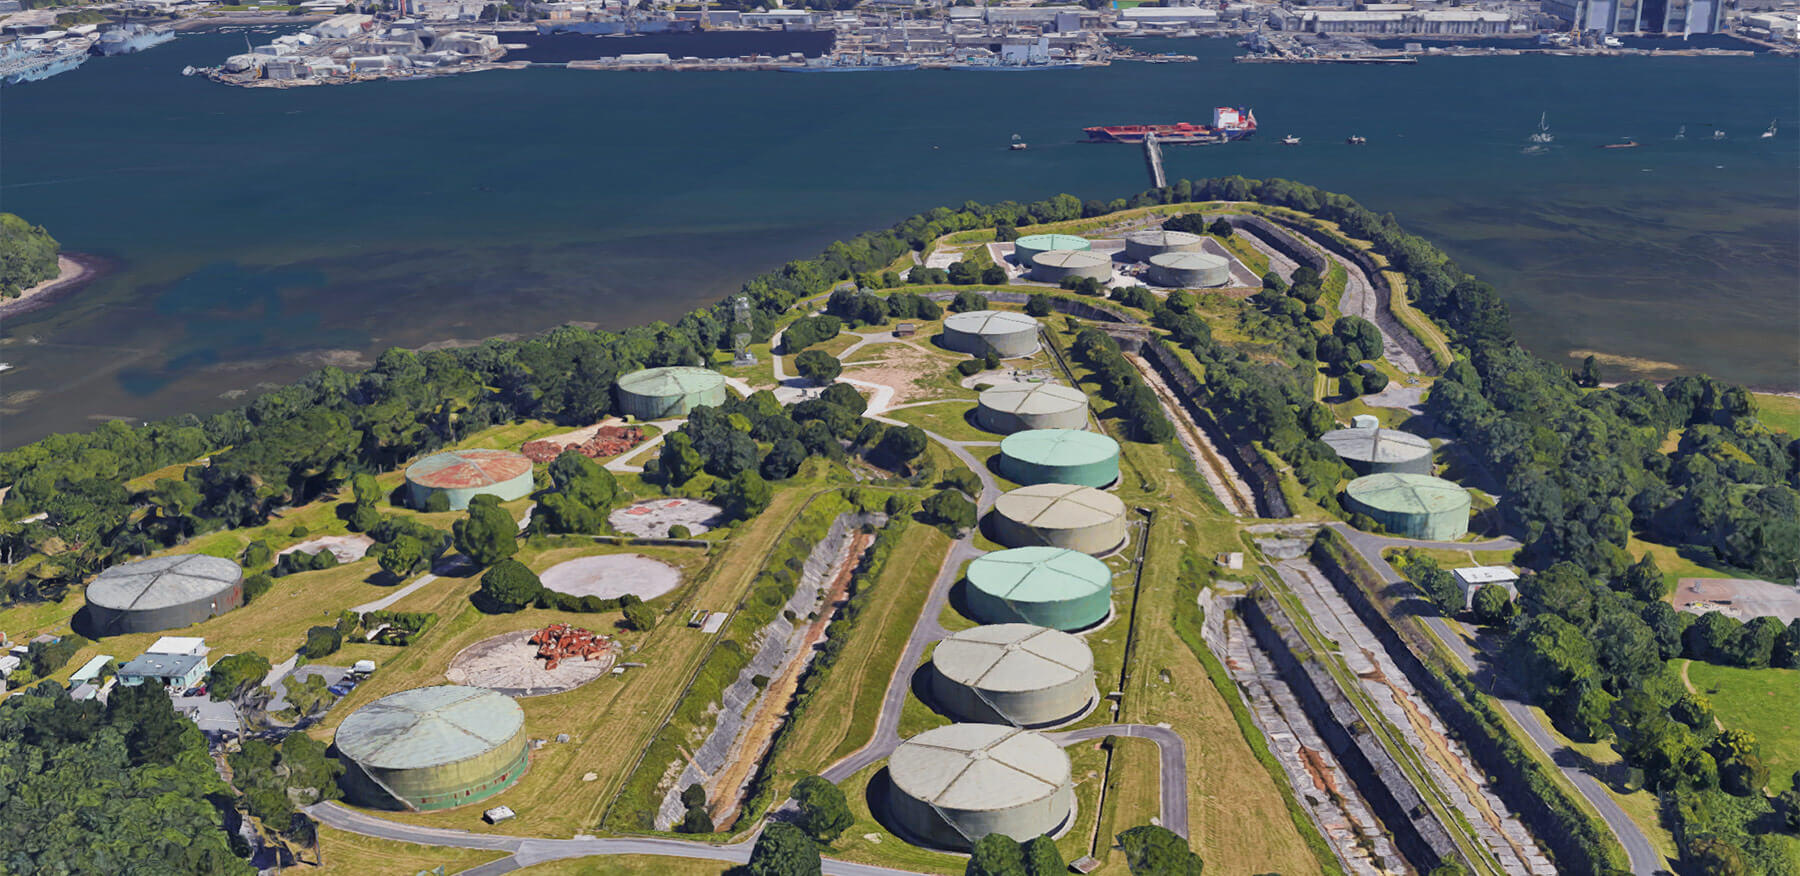 Thanckes Oil Fuel Depot, Torpoint, Cornwall